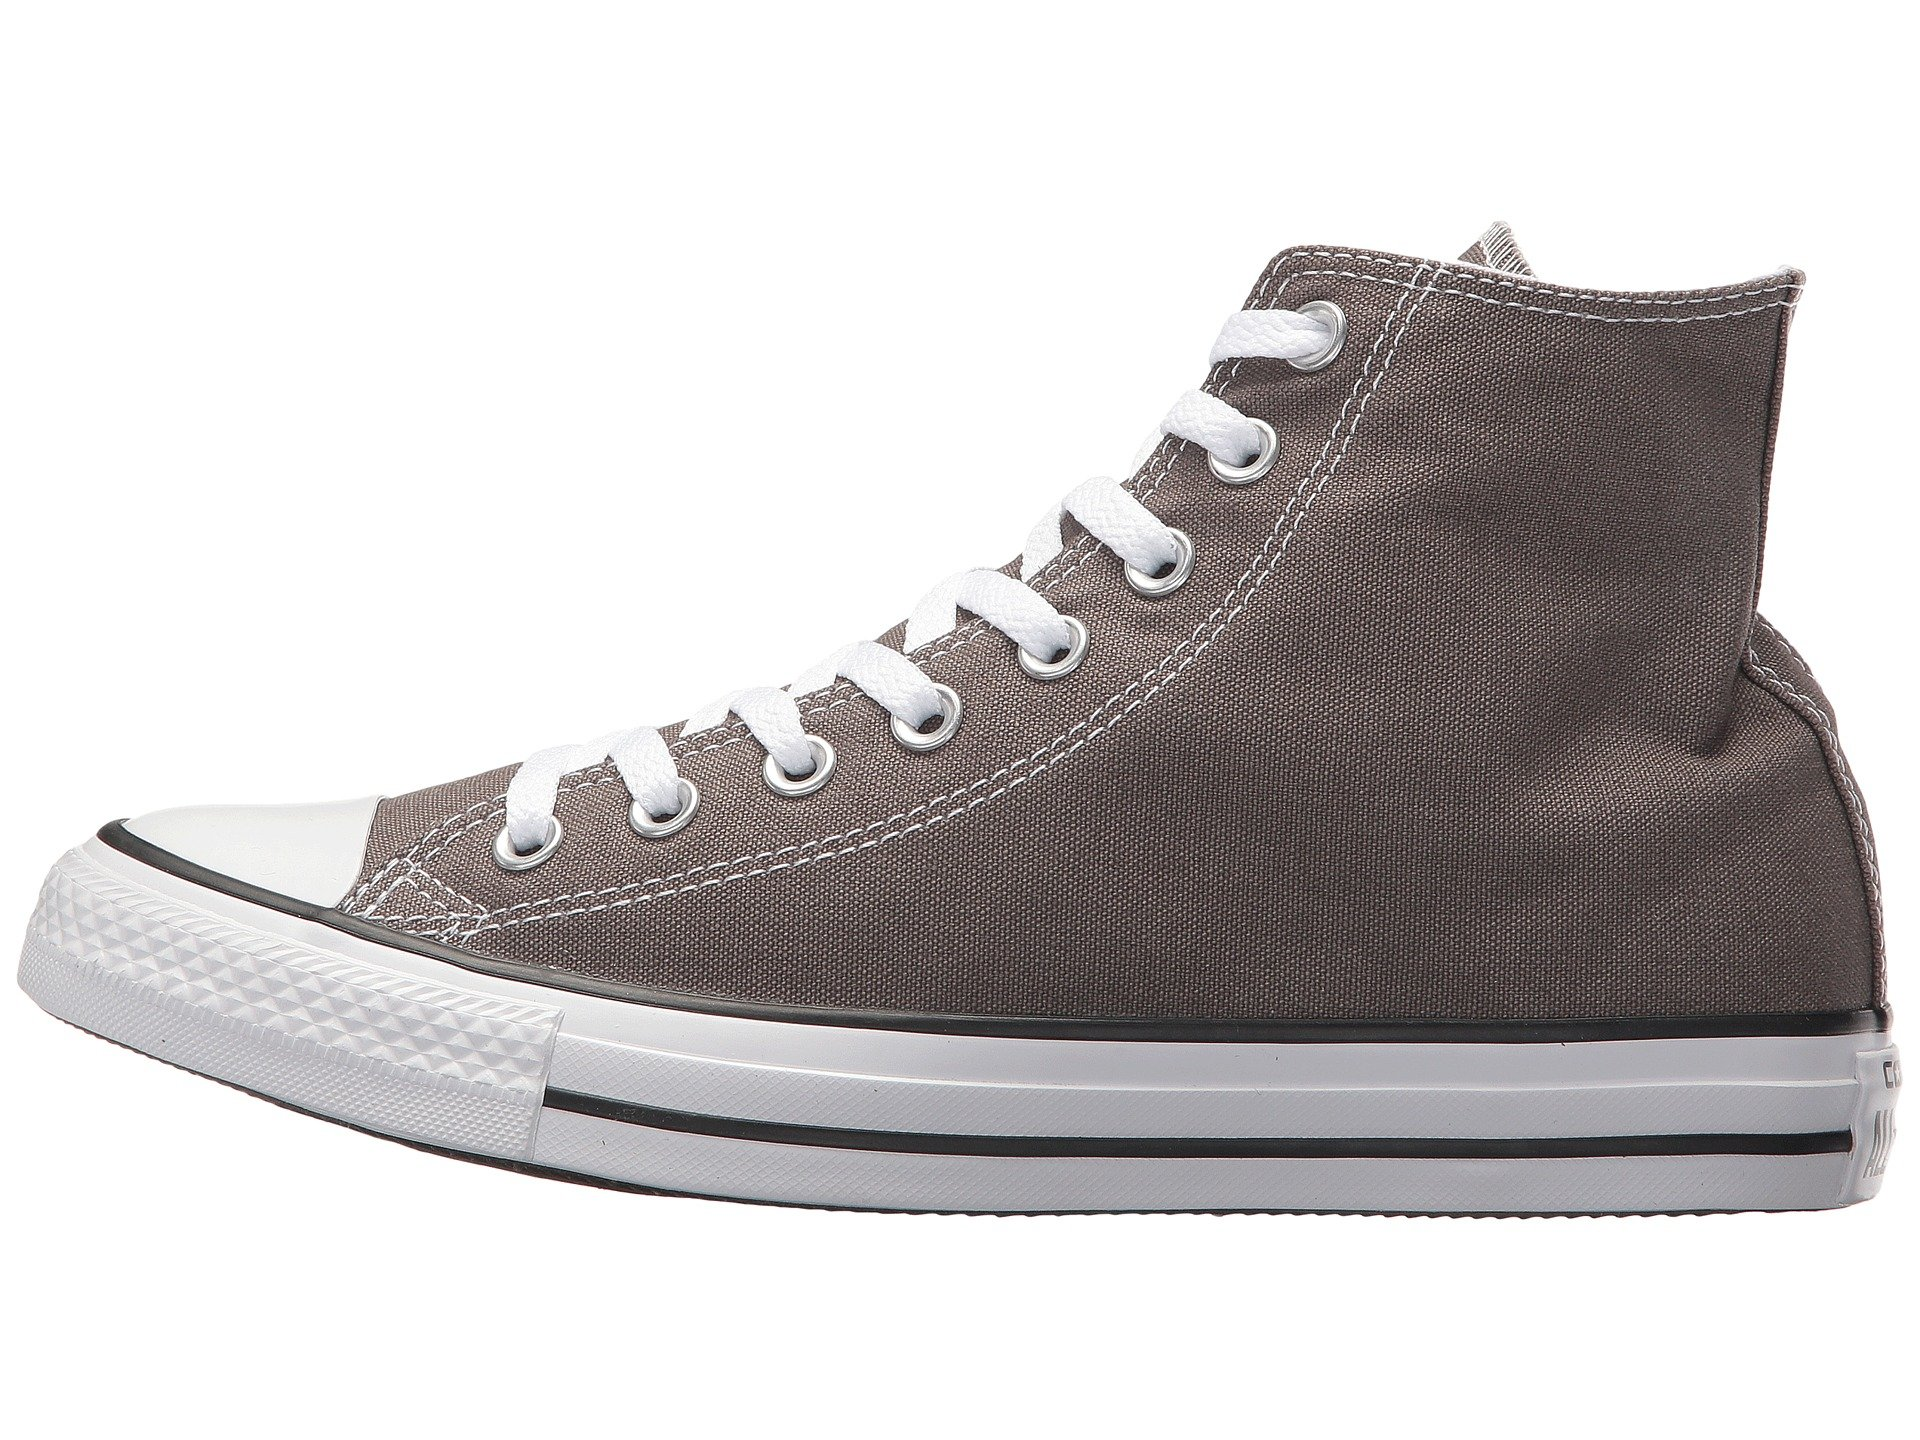 Converse chuck taylor all star core hi at zappos video nvjuhfo Gallery